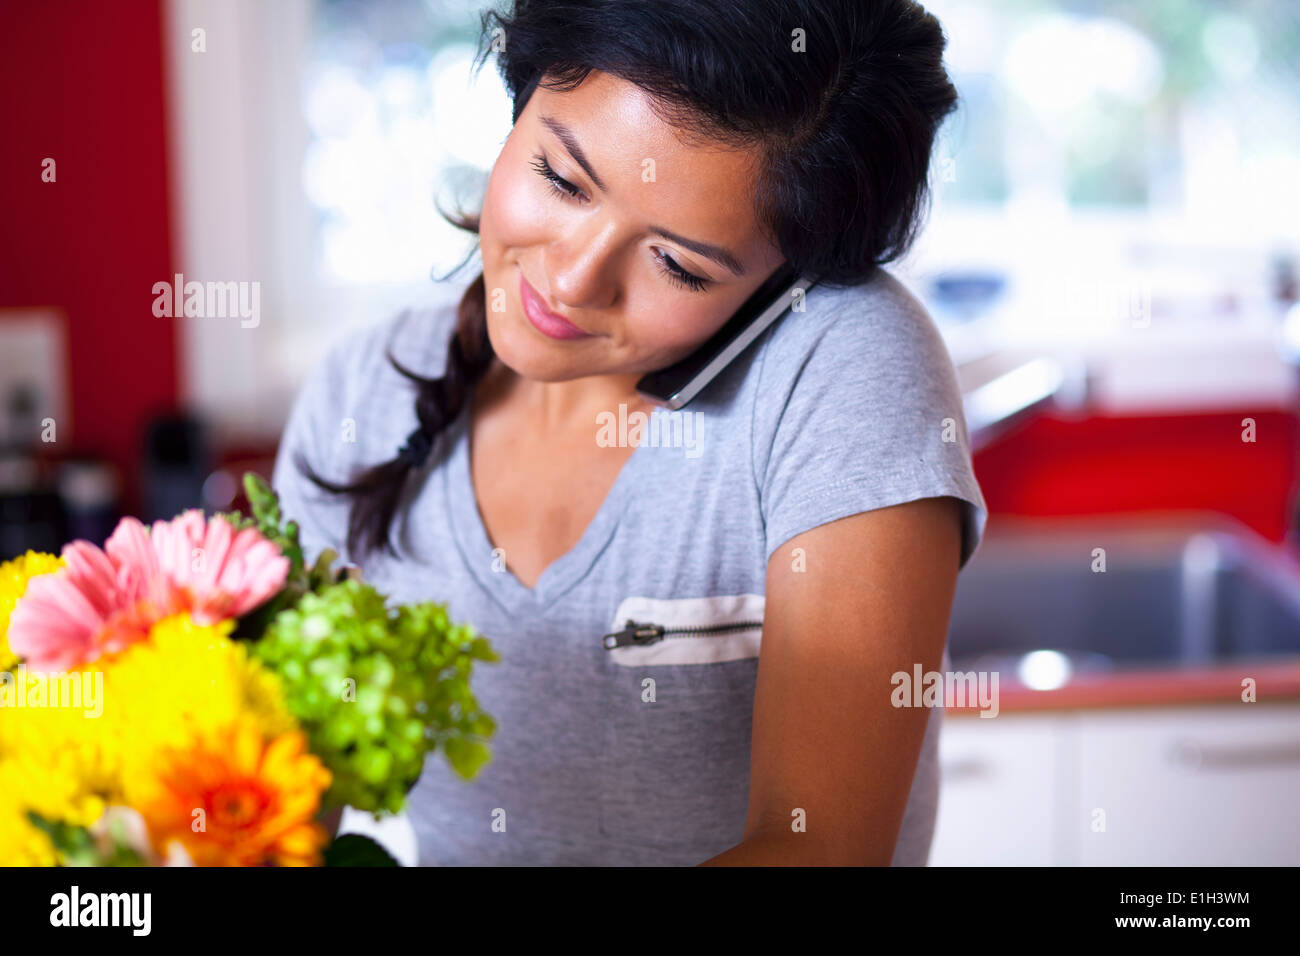 Young woman using cellular phone in kitchen - Stock Image